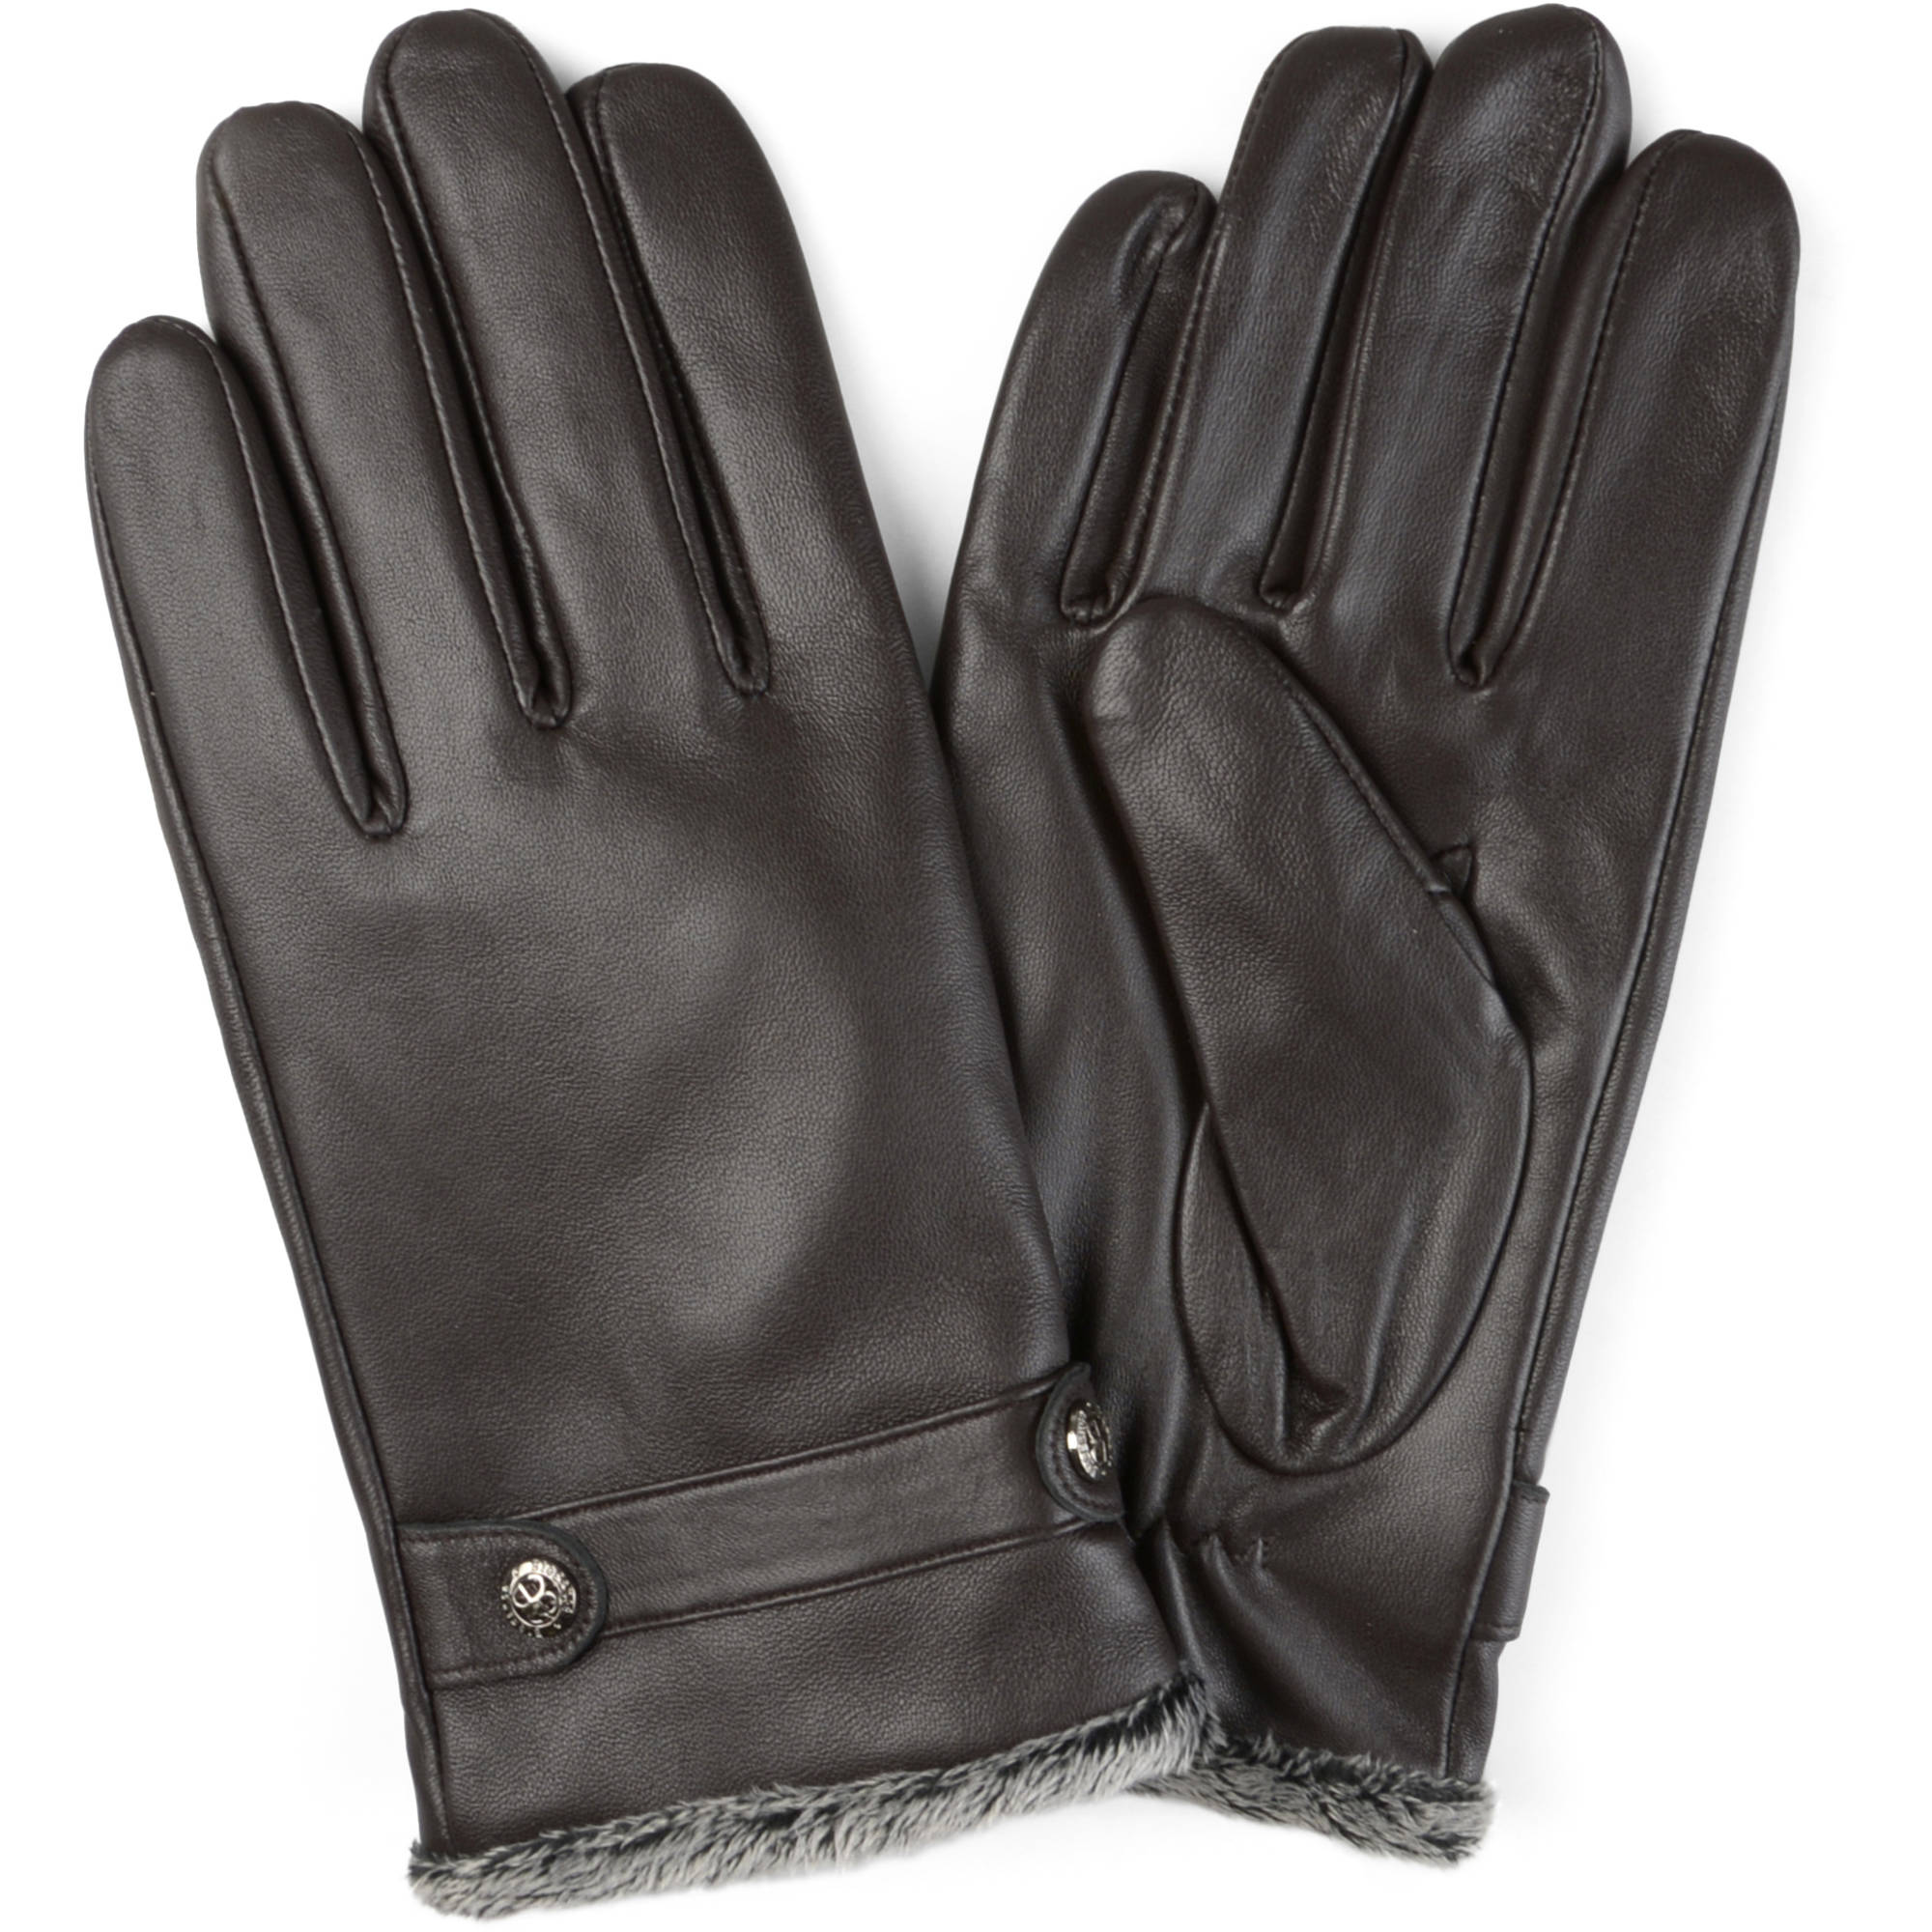 Daxx Mens Lined Fashion Leather Sheepskin Driving Gloves